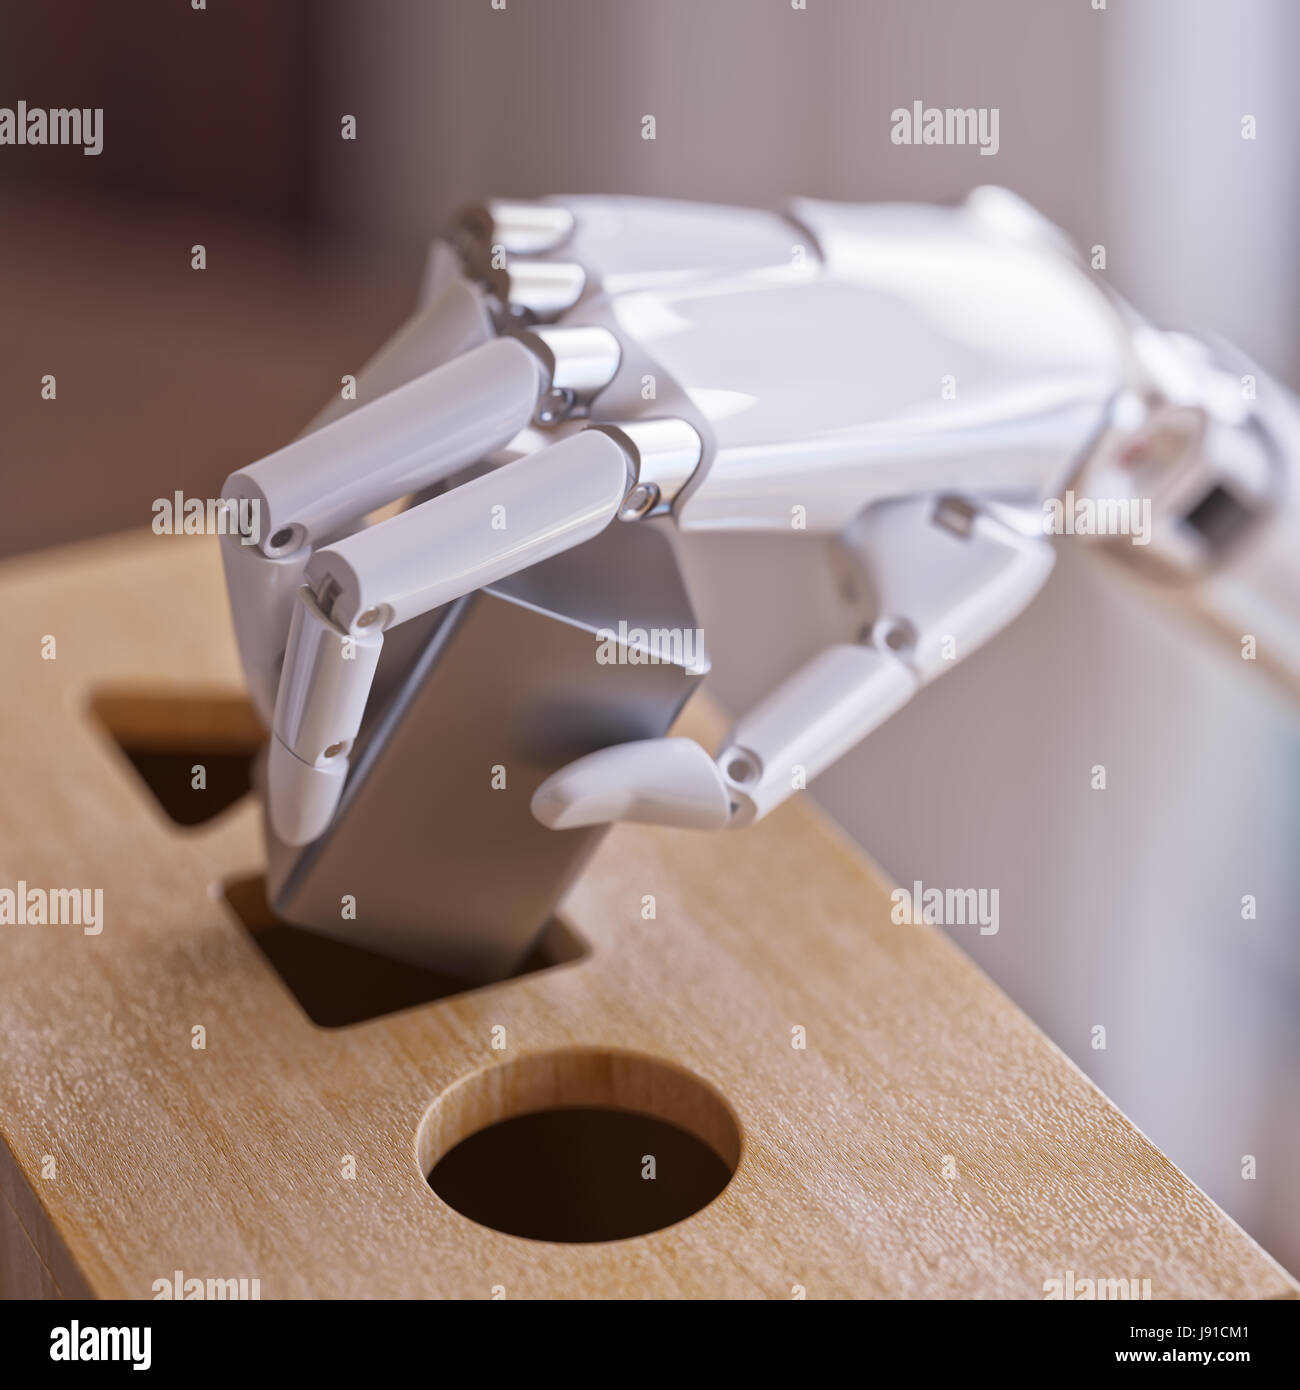 Machine Learning Stock Photos & Machine Learning Stock Images - Alamy